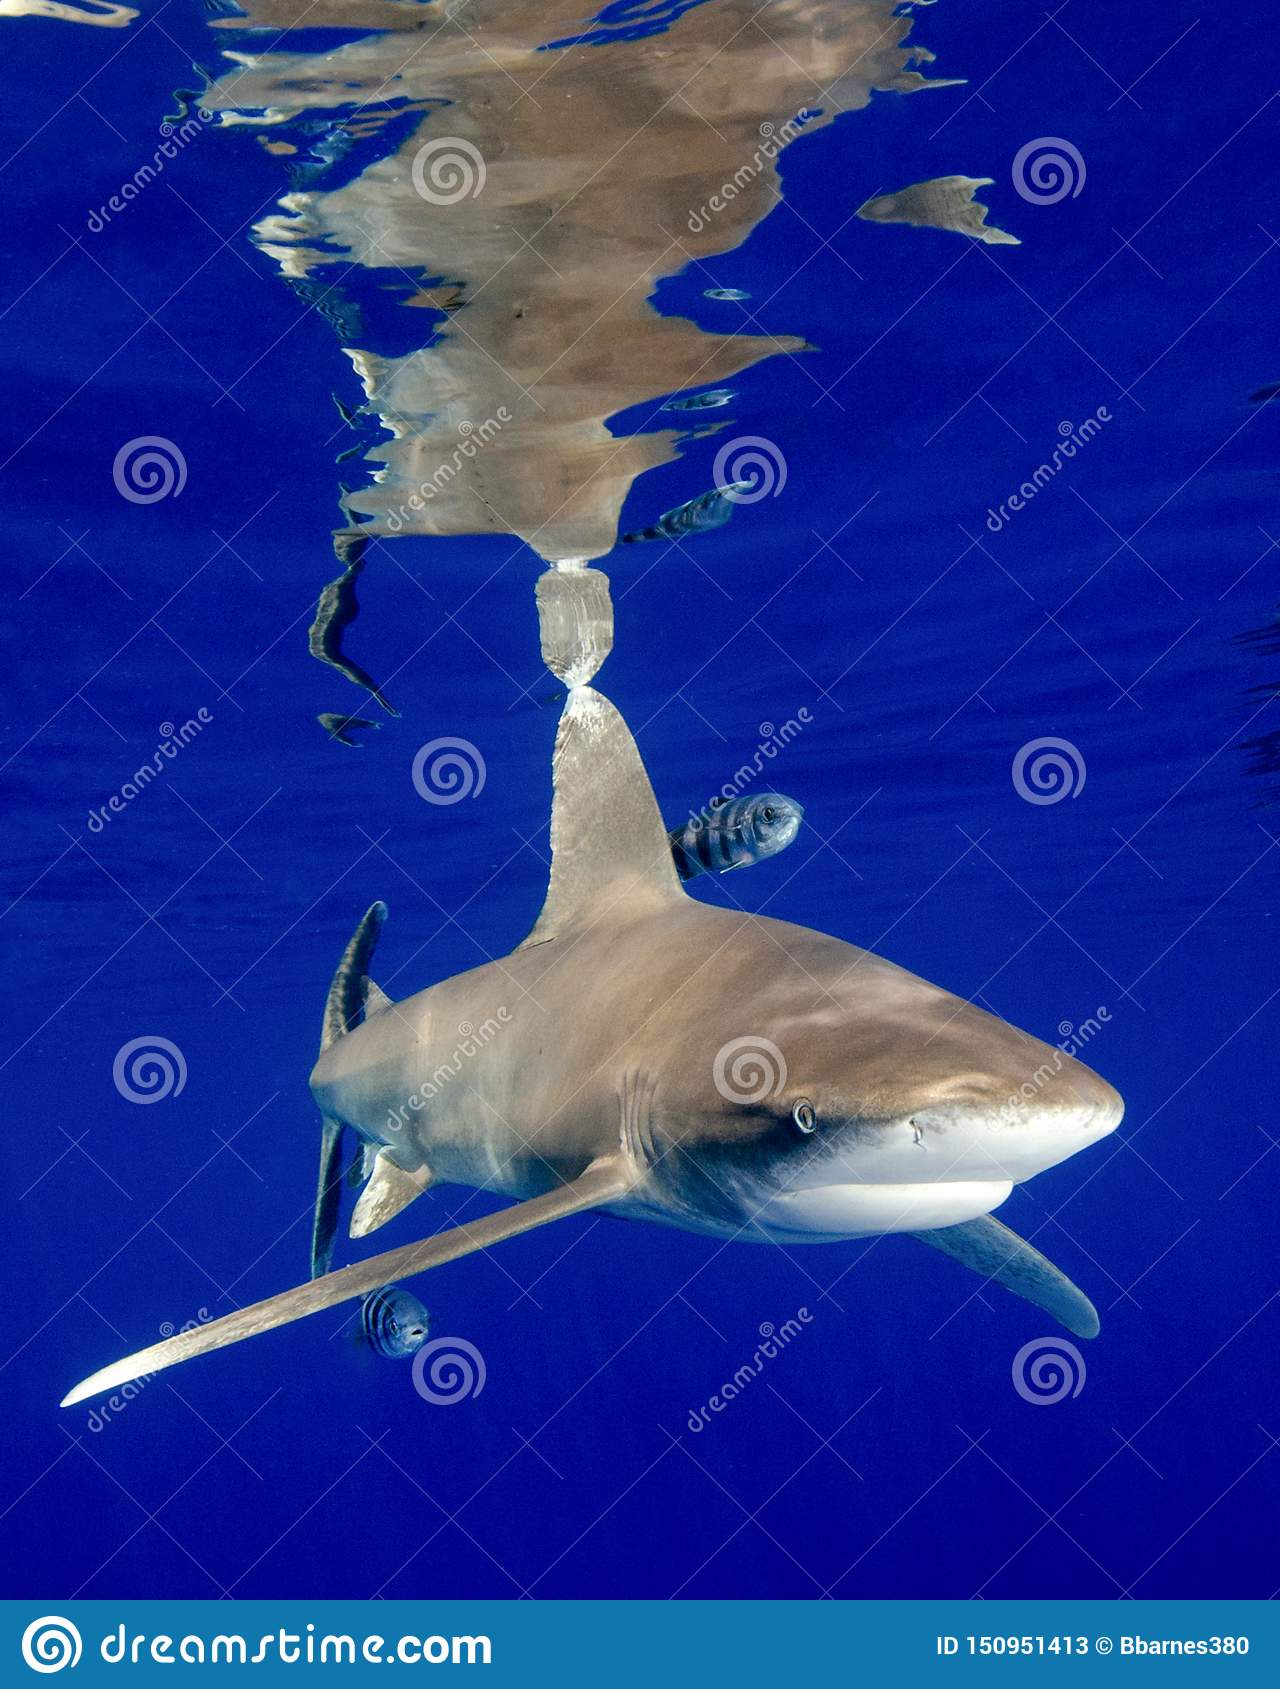 The Reflections of an Oceanic White Tip Shark in the Bahamas